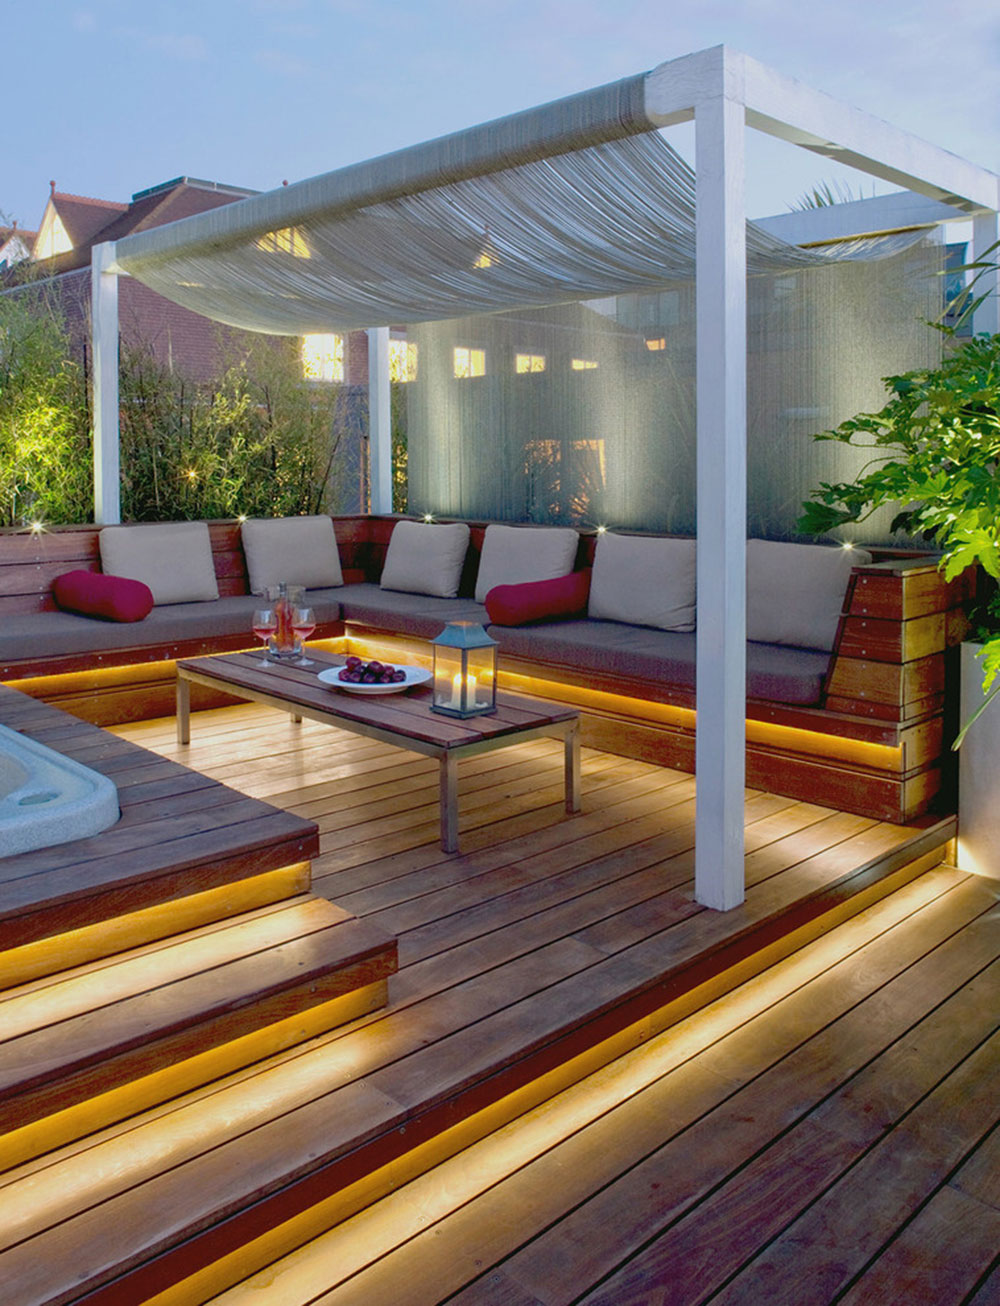 Outdoor living ideas by quiet earth landscapes - Ideas For Creating An Outdoor Living Space16 Ideas For Creating